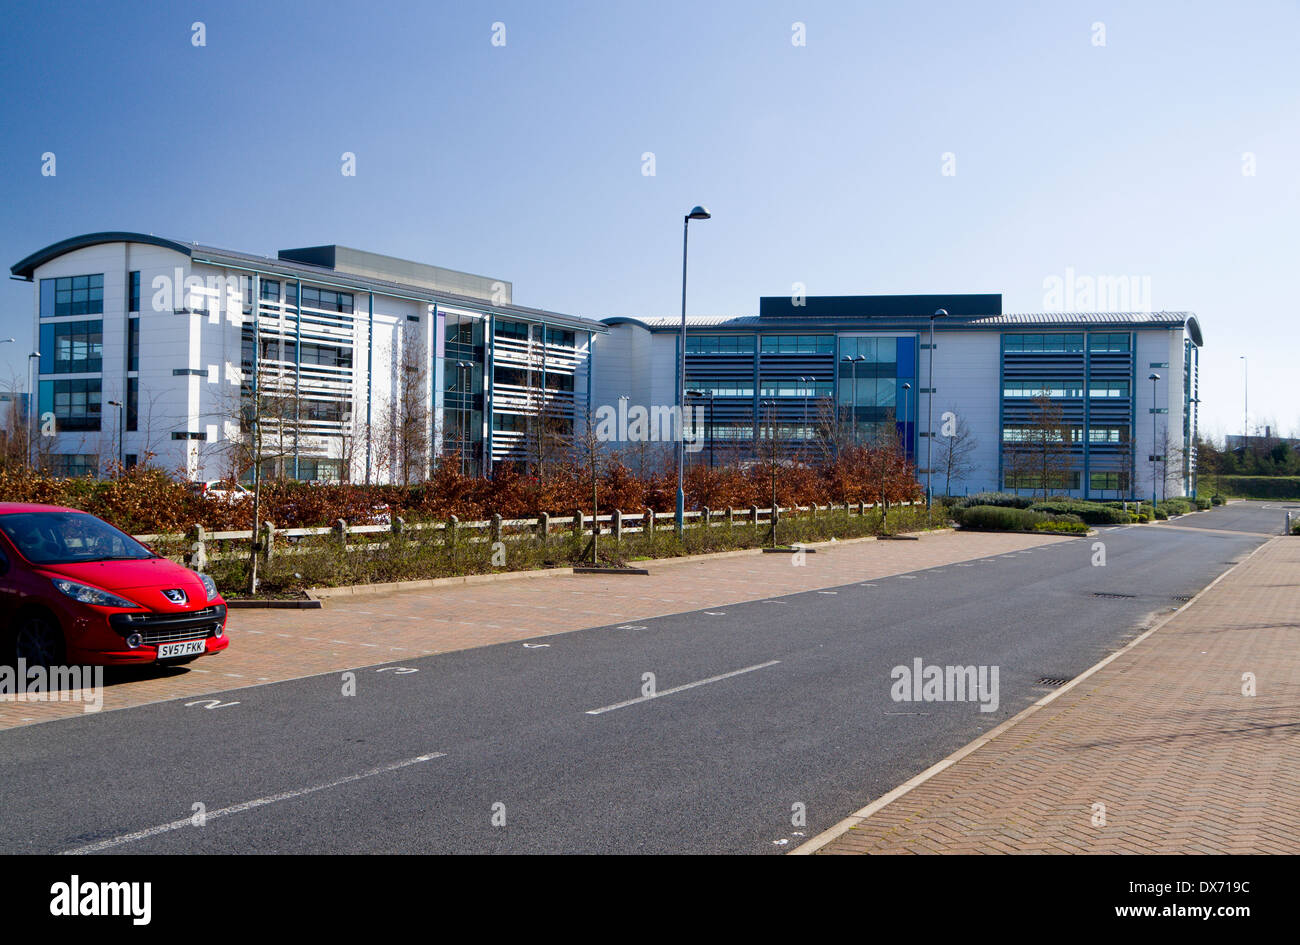 Global reach offices cardiff bay wales stock photo for Office design cardiff